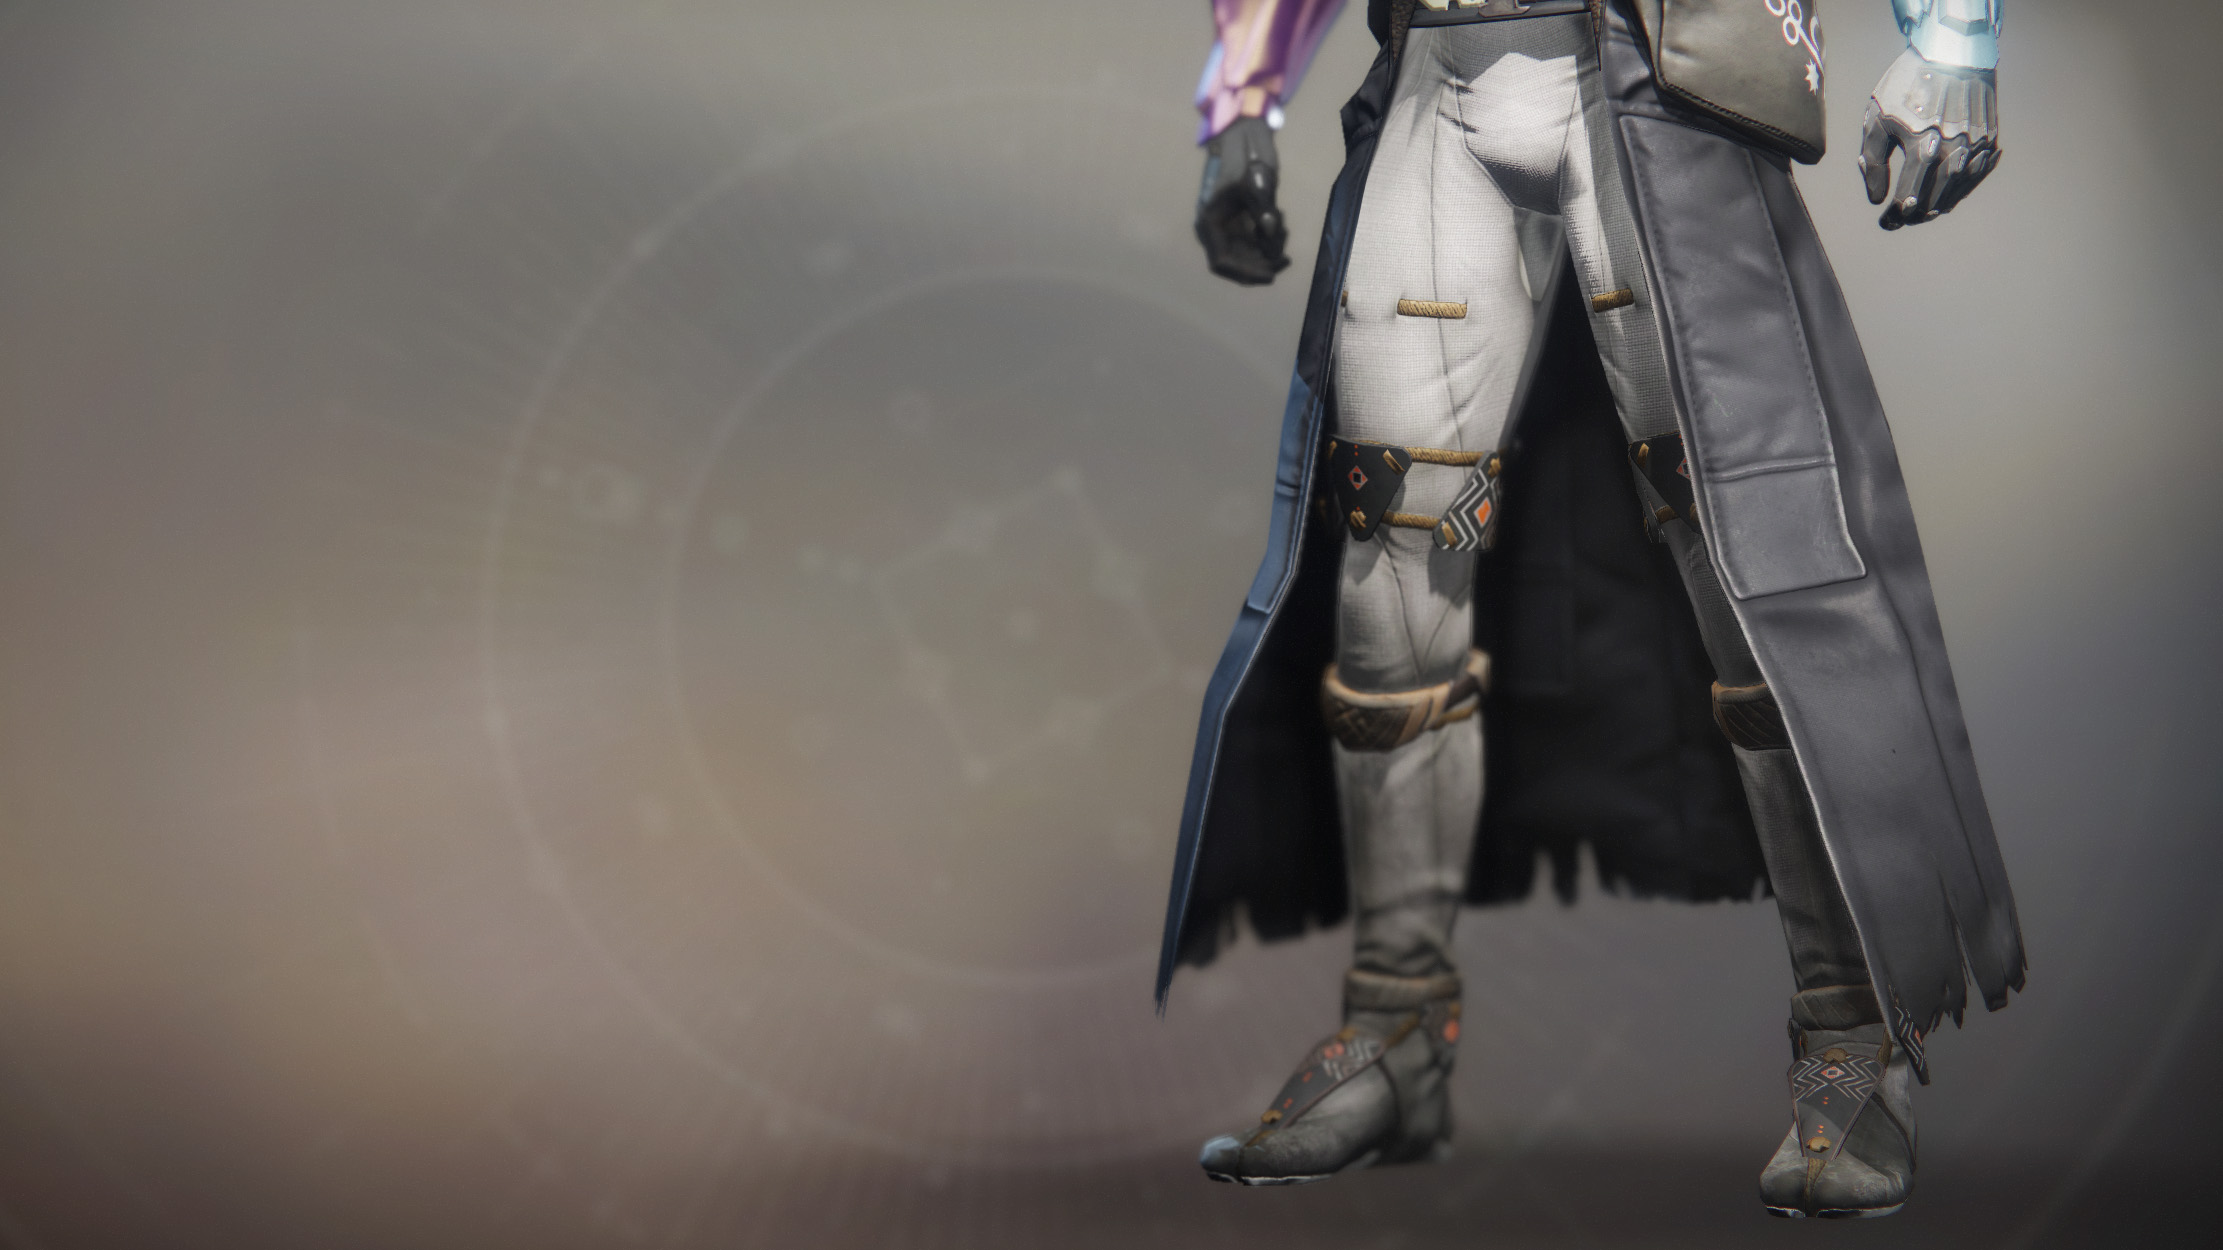 destiny 2 lunafaction boots